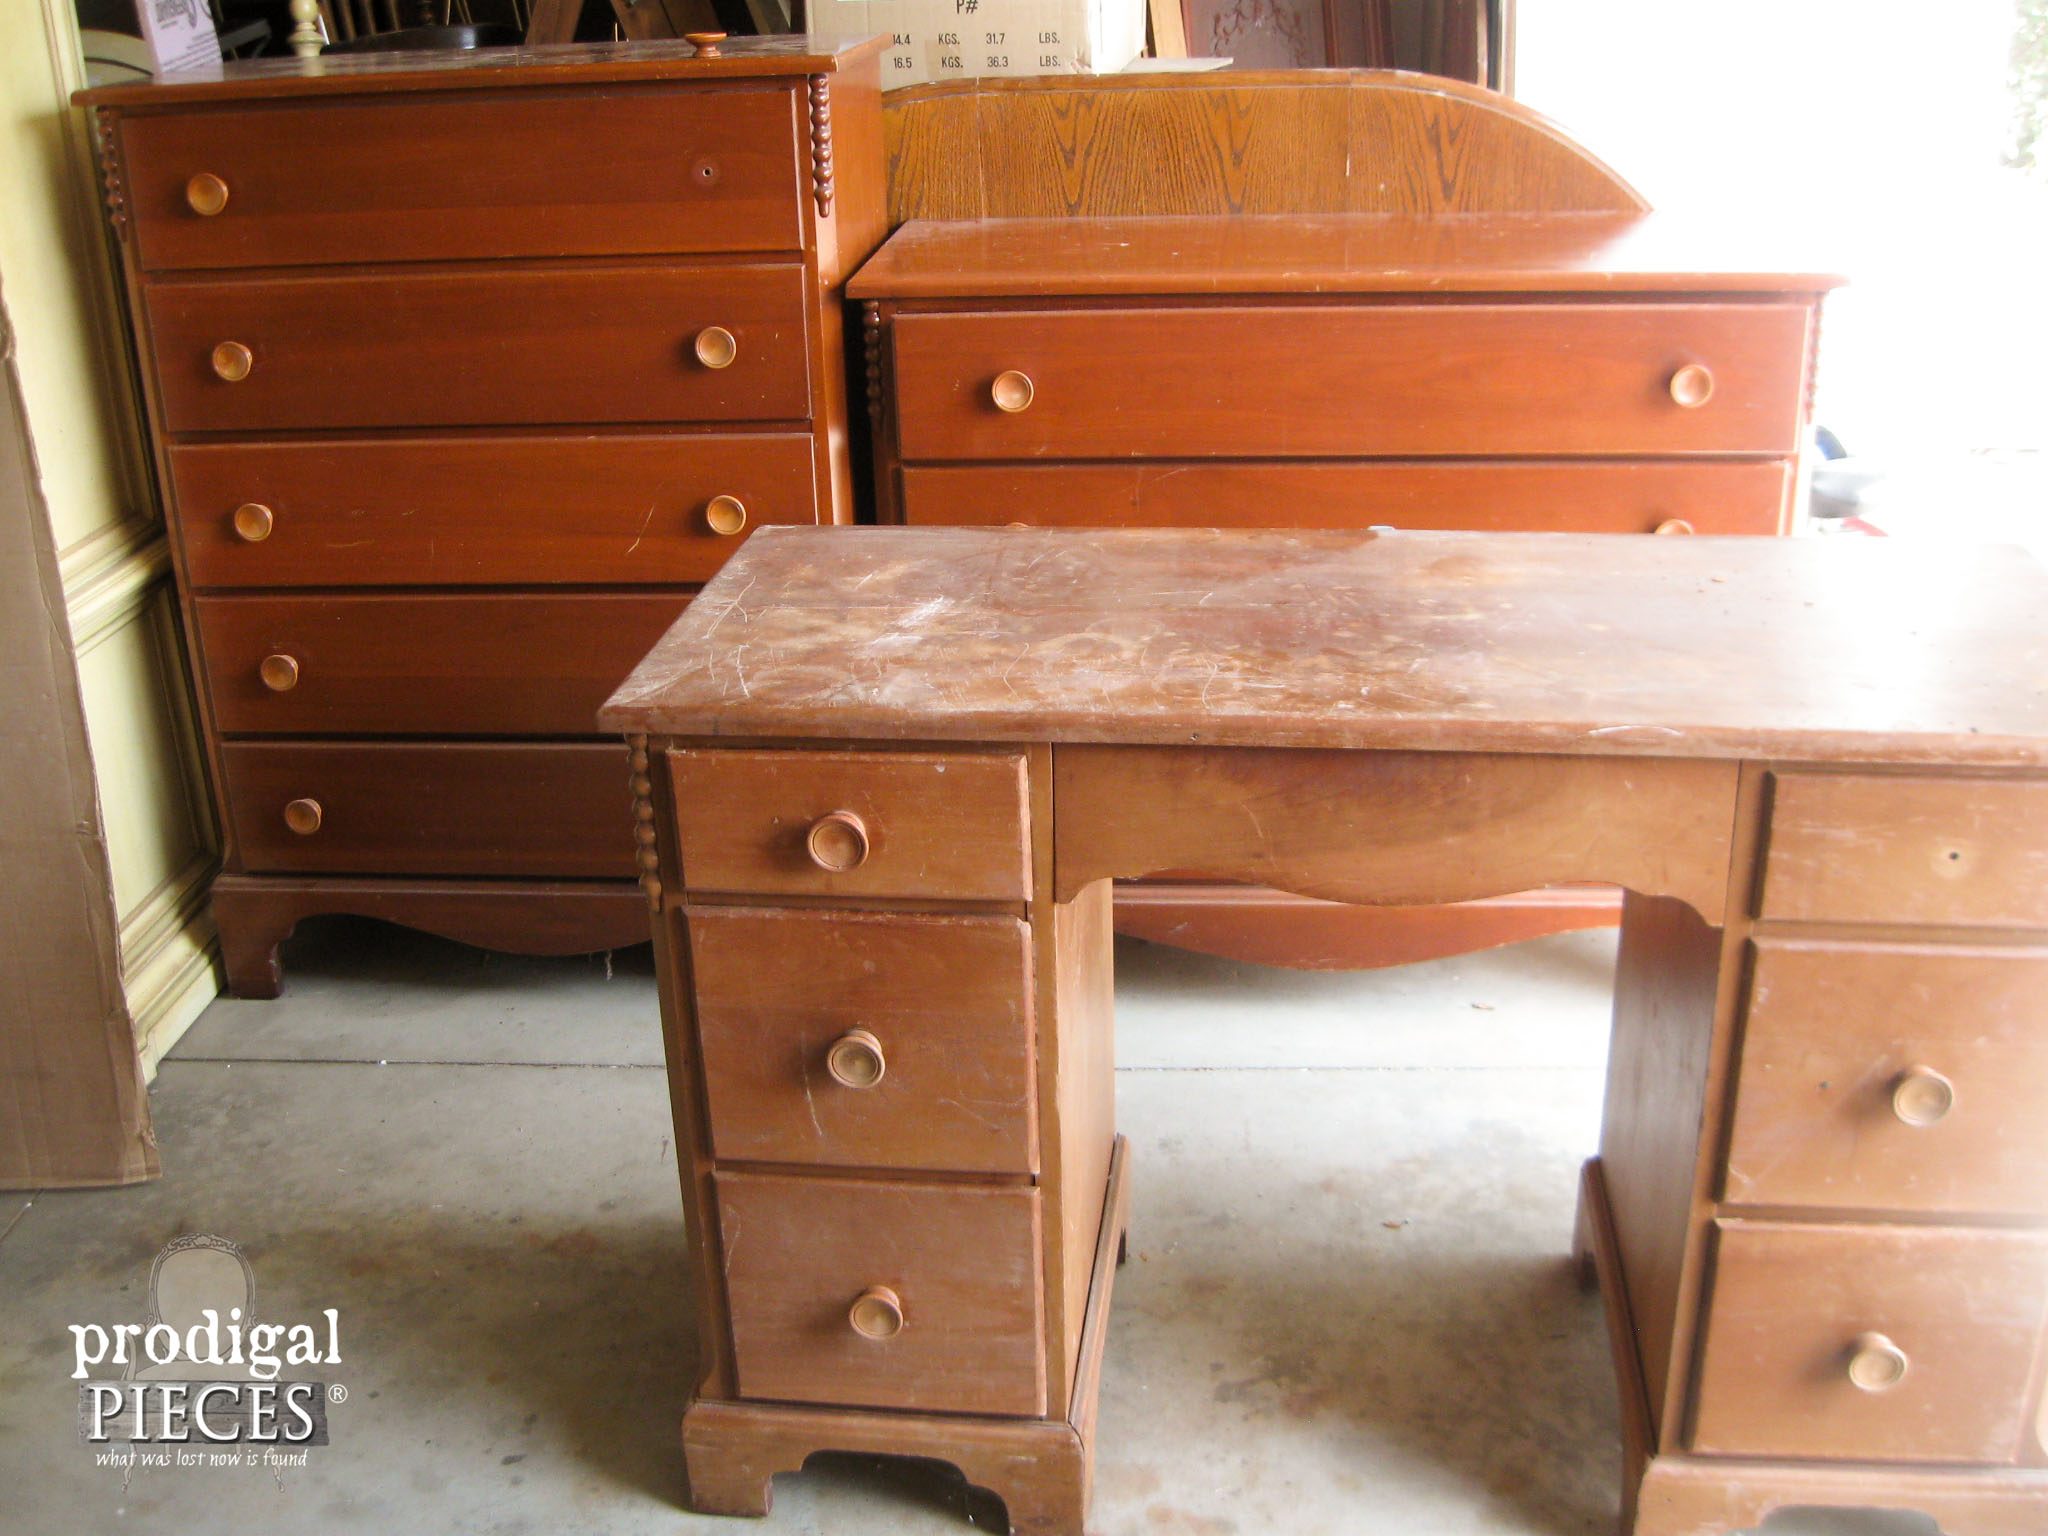 Vintage Cherry Bedroom Set Reunited | Prodigal Pieces |  Www.prodigalpieces.com